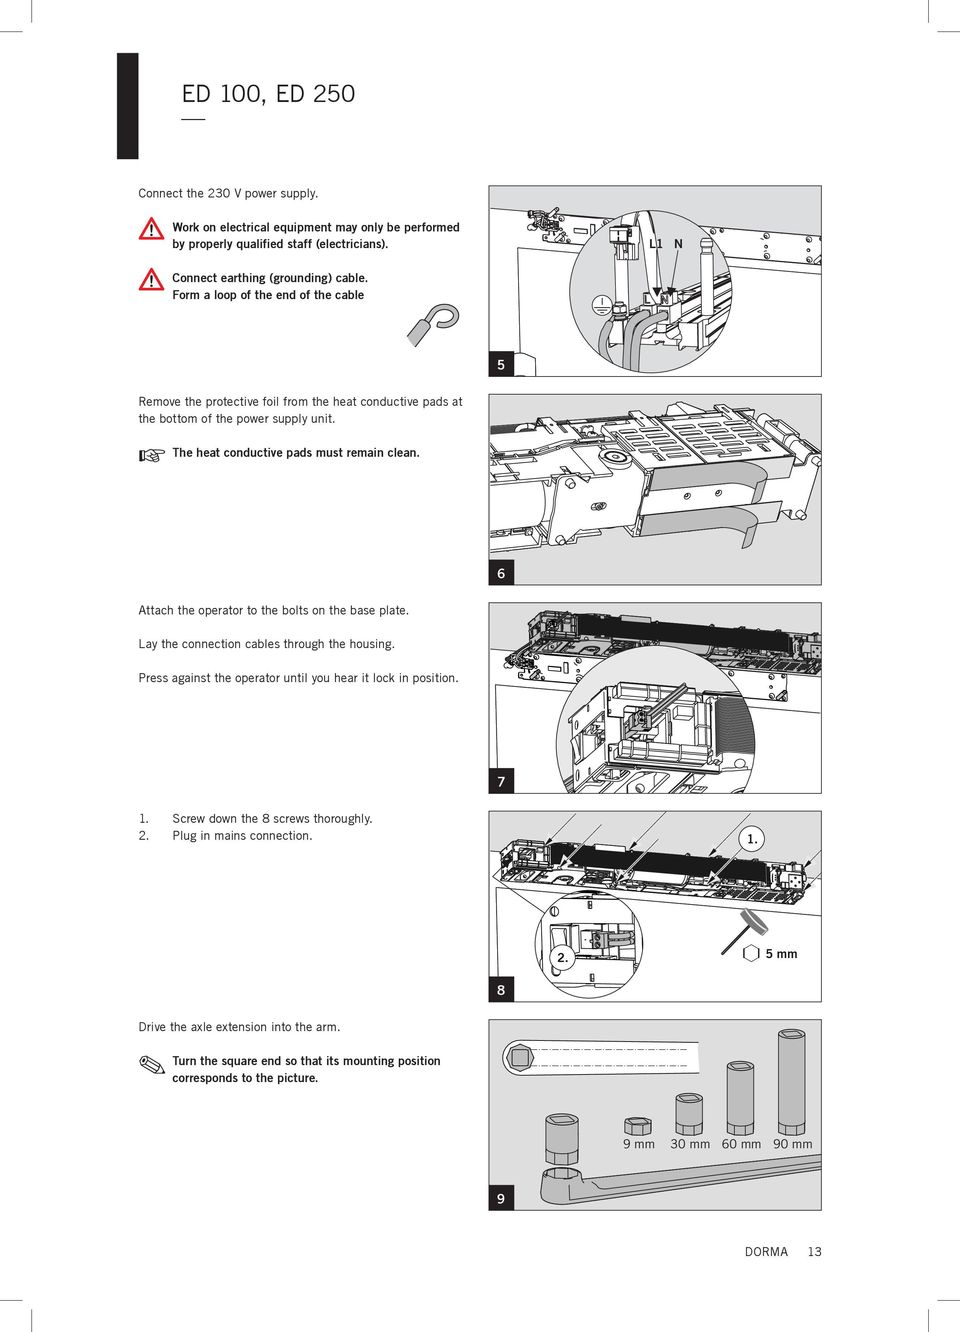 Ed 100 250 Mounting Instructions Pdf 300 Key Switch Wiring Diagram 6 Attach The Operator To Bolts On Base Plate Lay Connection Cables